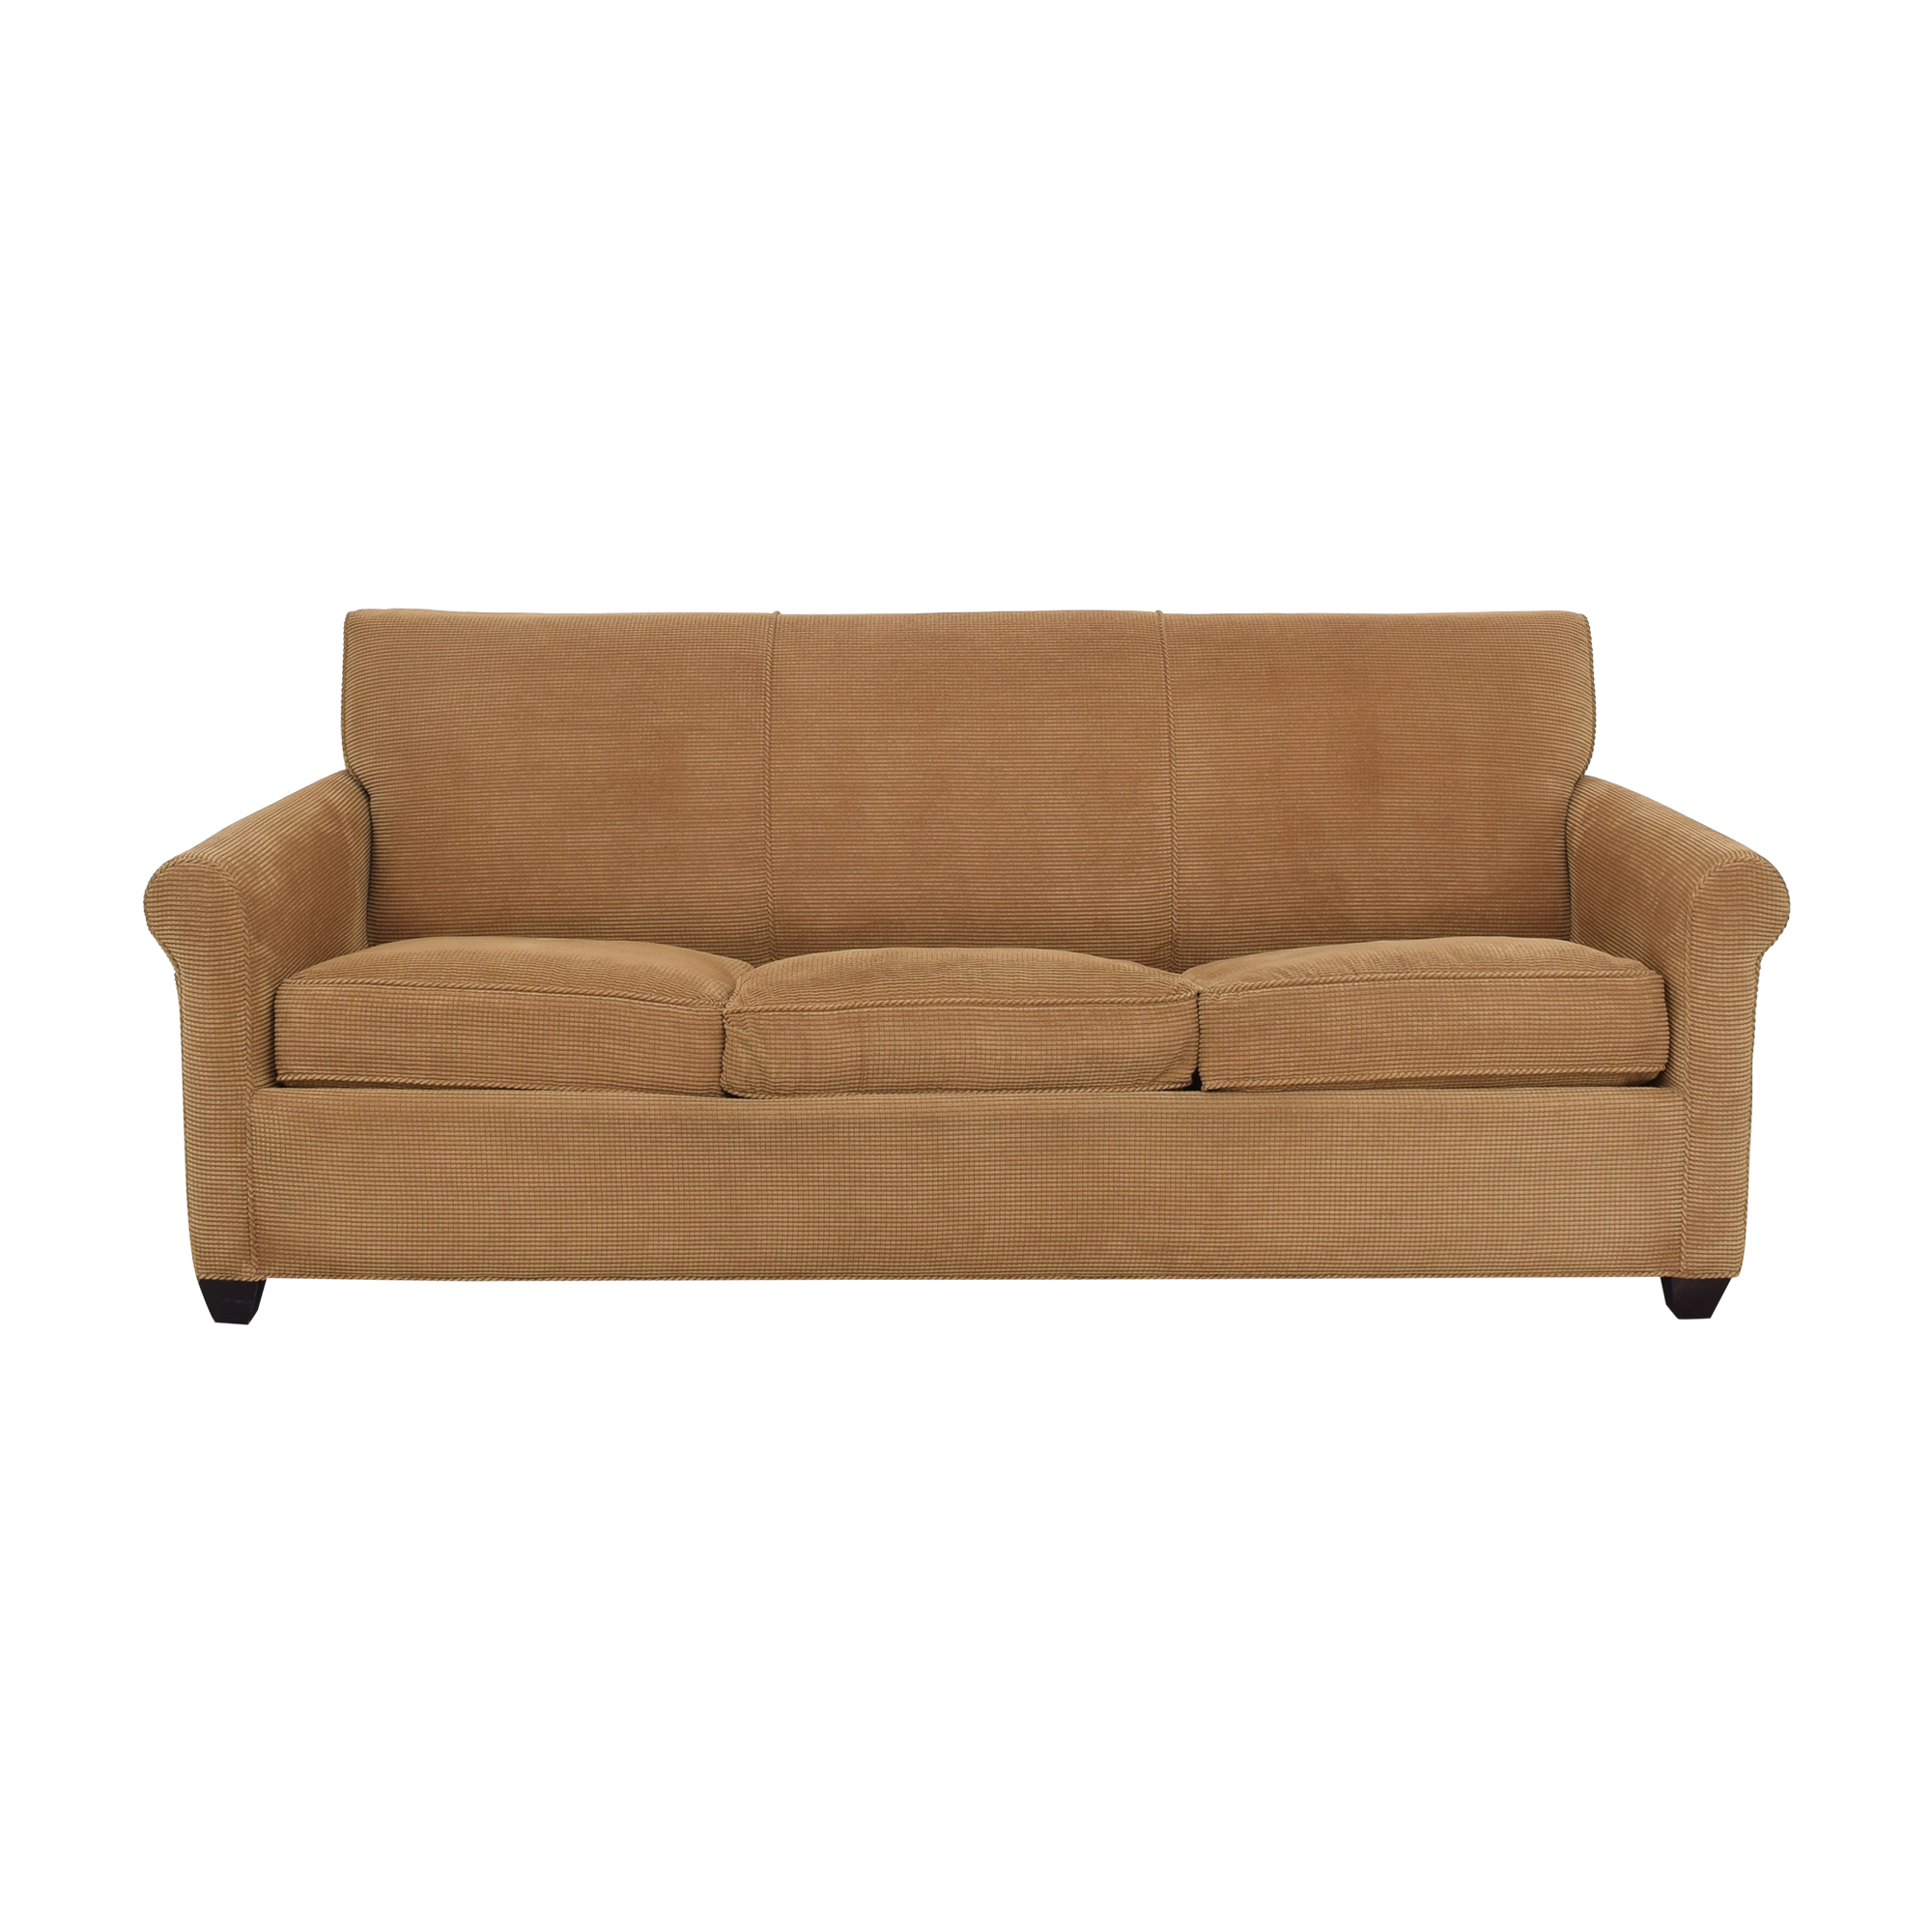 buy Crate & Barrel Crate & Barrel Rolled Arm Queen Sleeper Sofa online